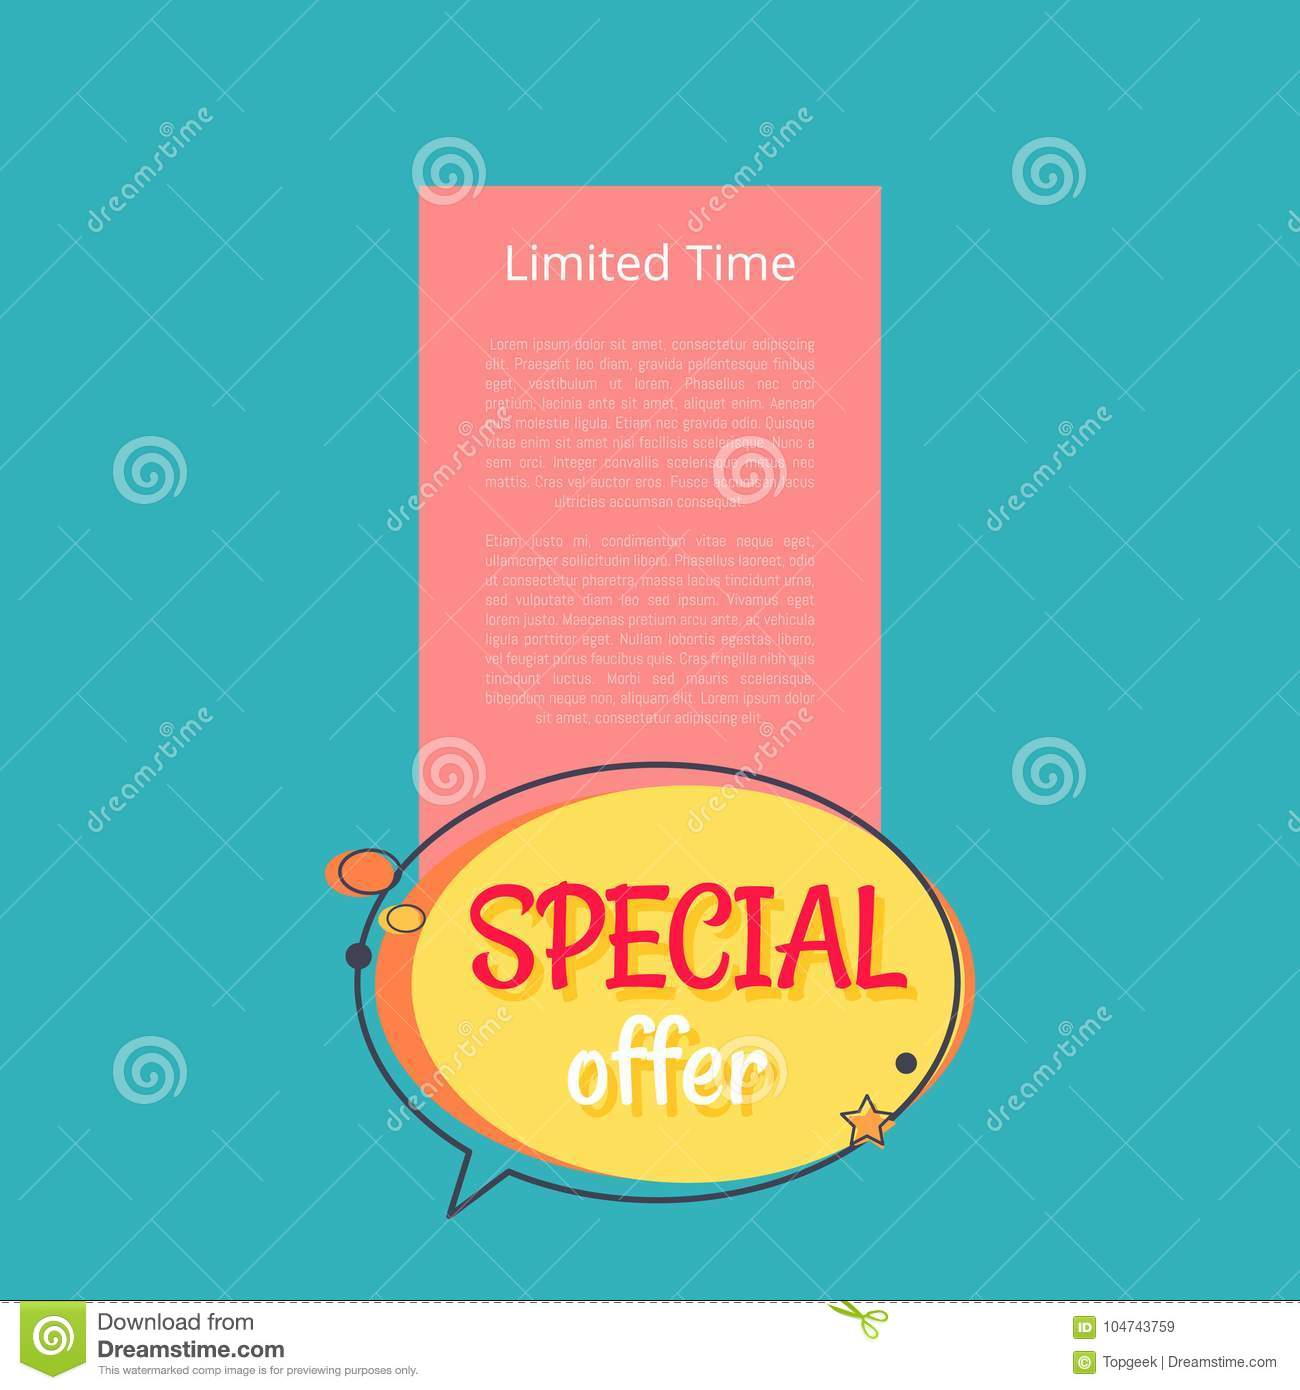 87e60a390 Limited Time Special Offer Sale Advert Poster Stock Vector ...